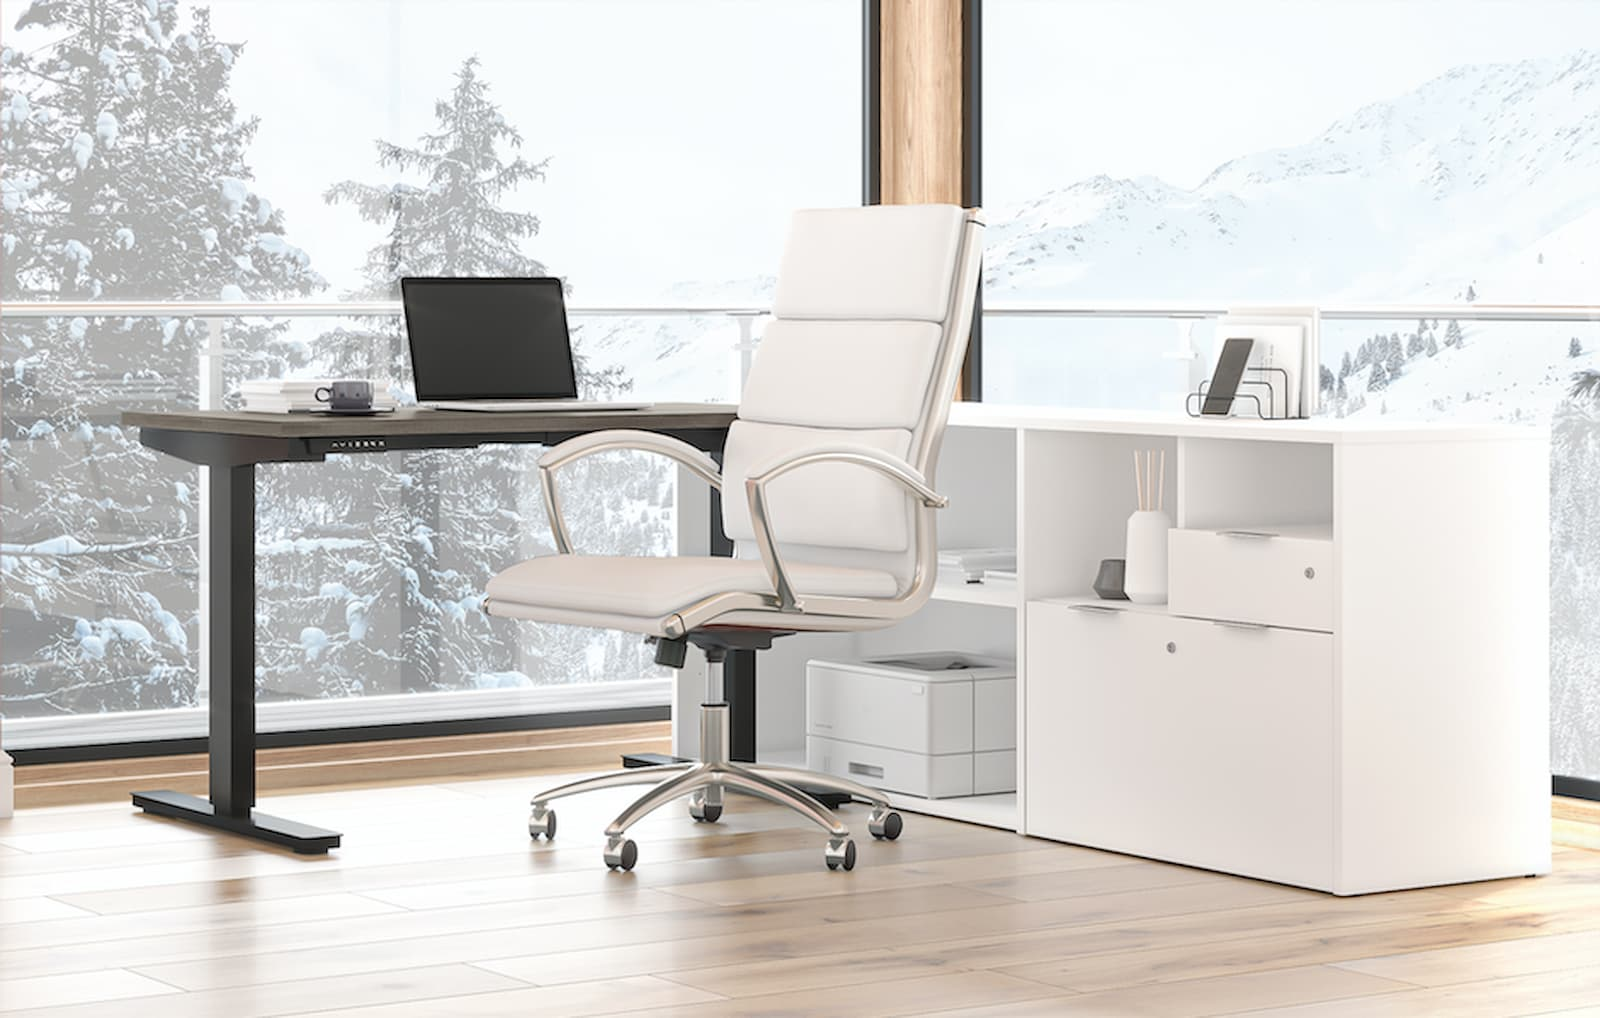 l-shaped standing desk with white credenza and white swivel chair. laptop on the standing desk. snowy mountains and trees outside.